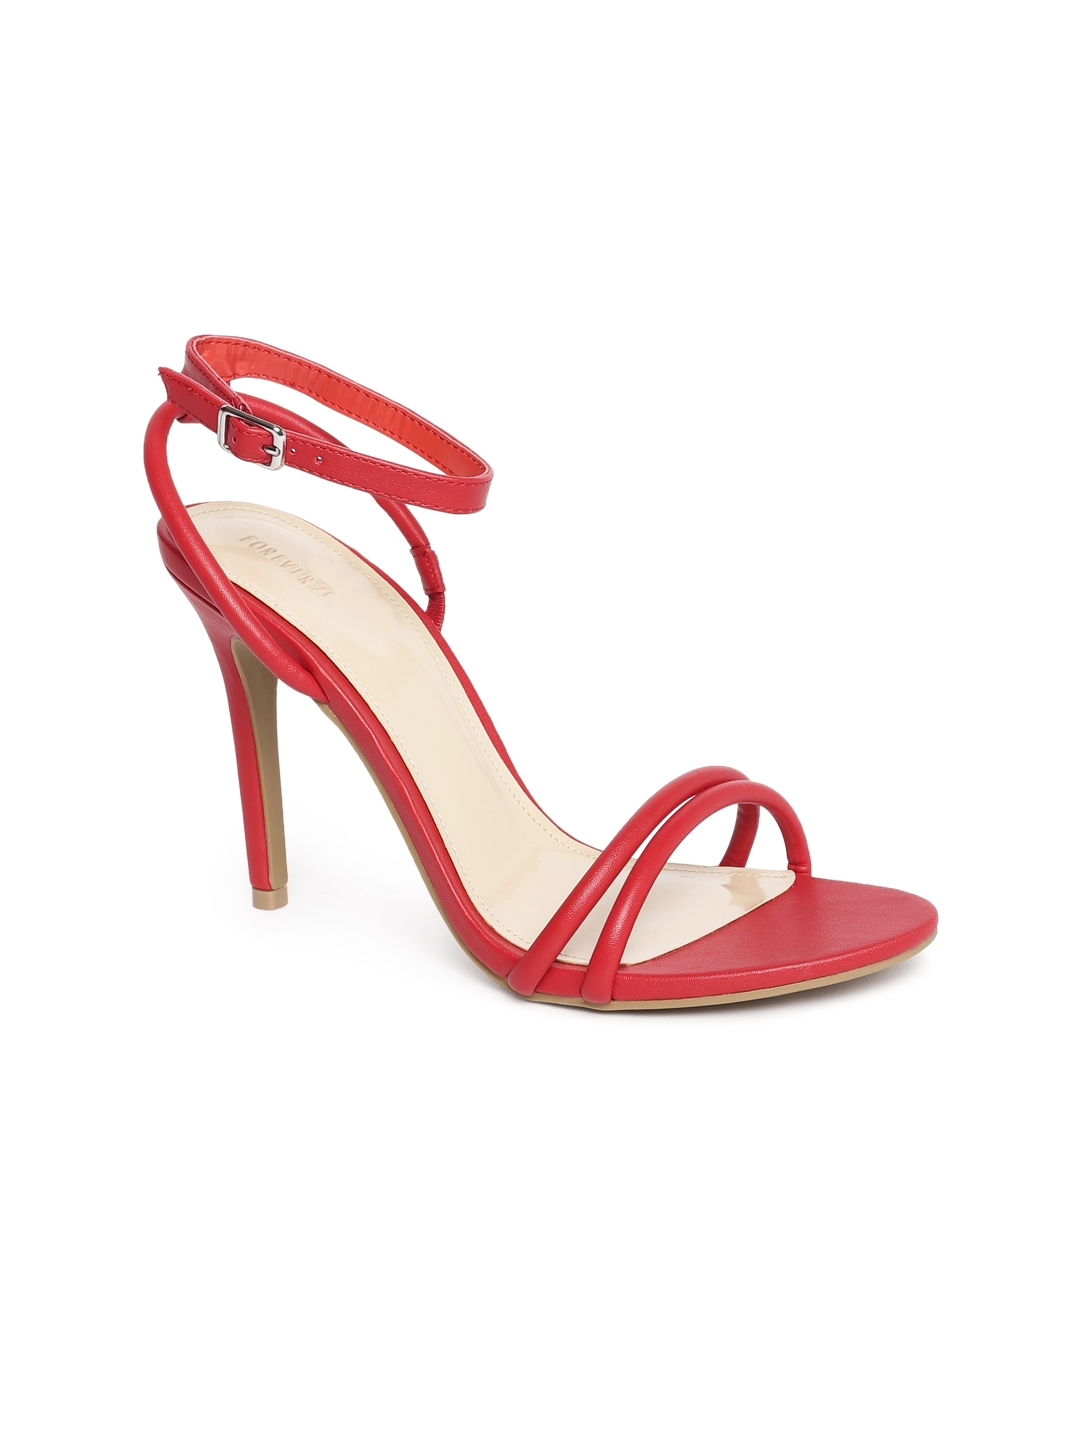 fd4781cde517 Buy FOREVER 21 Women Red Solid Heels - Heels for Women 5642018